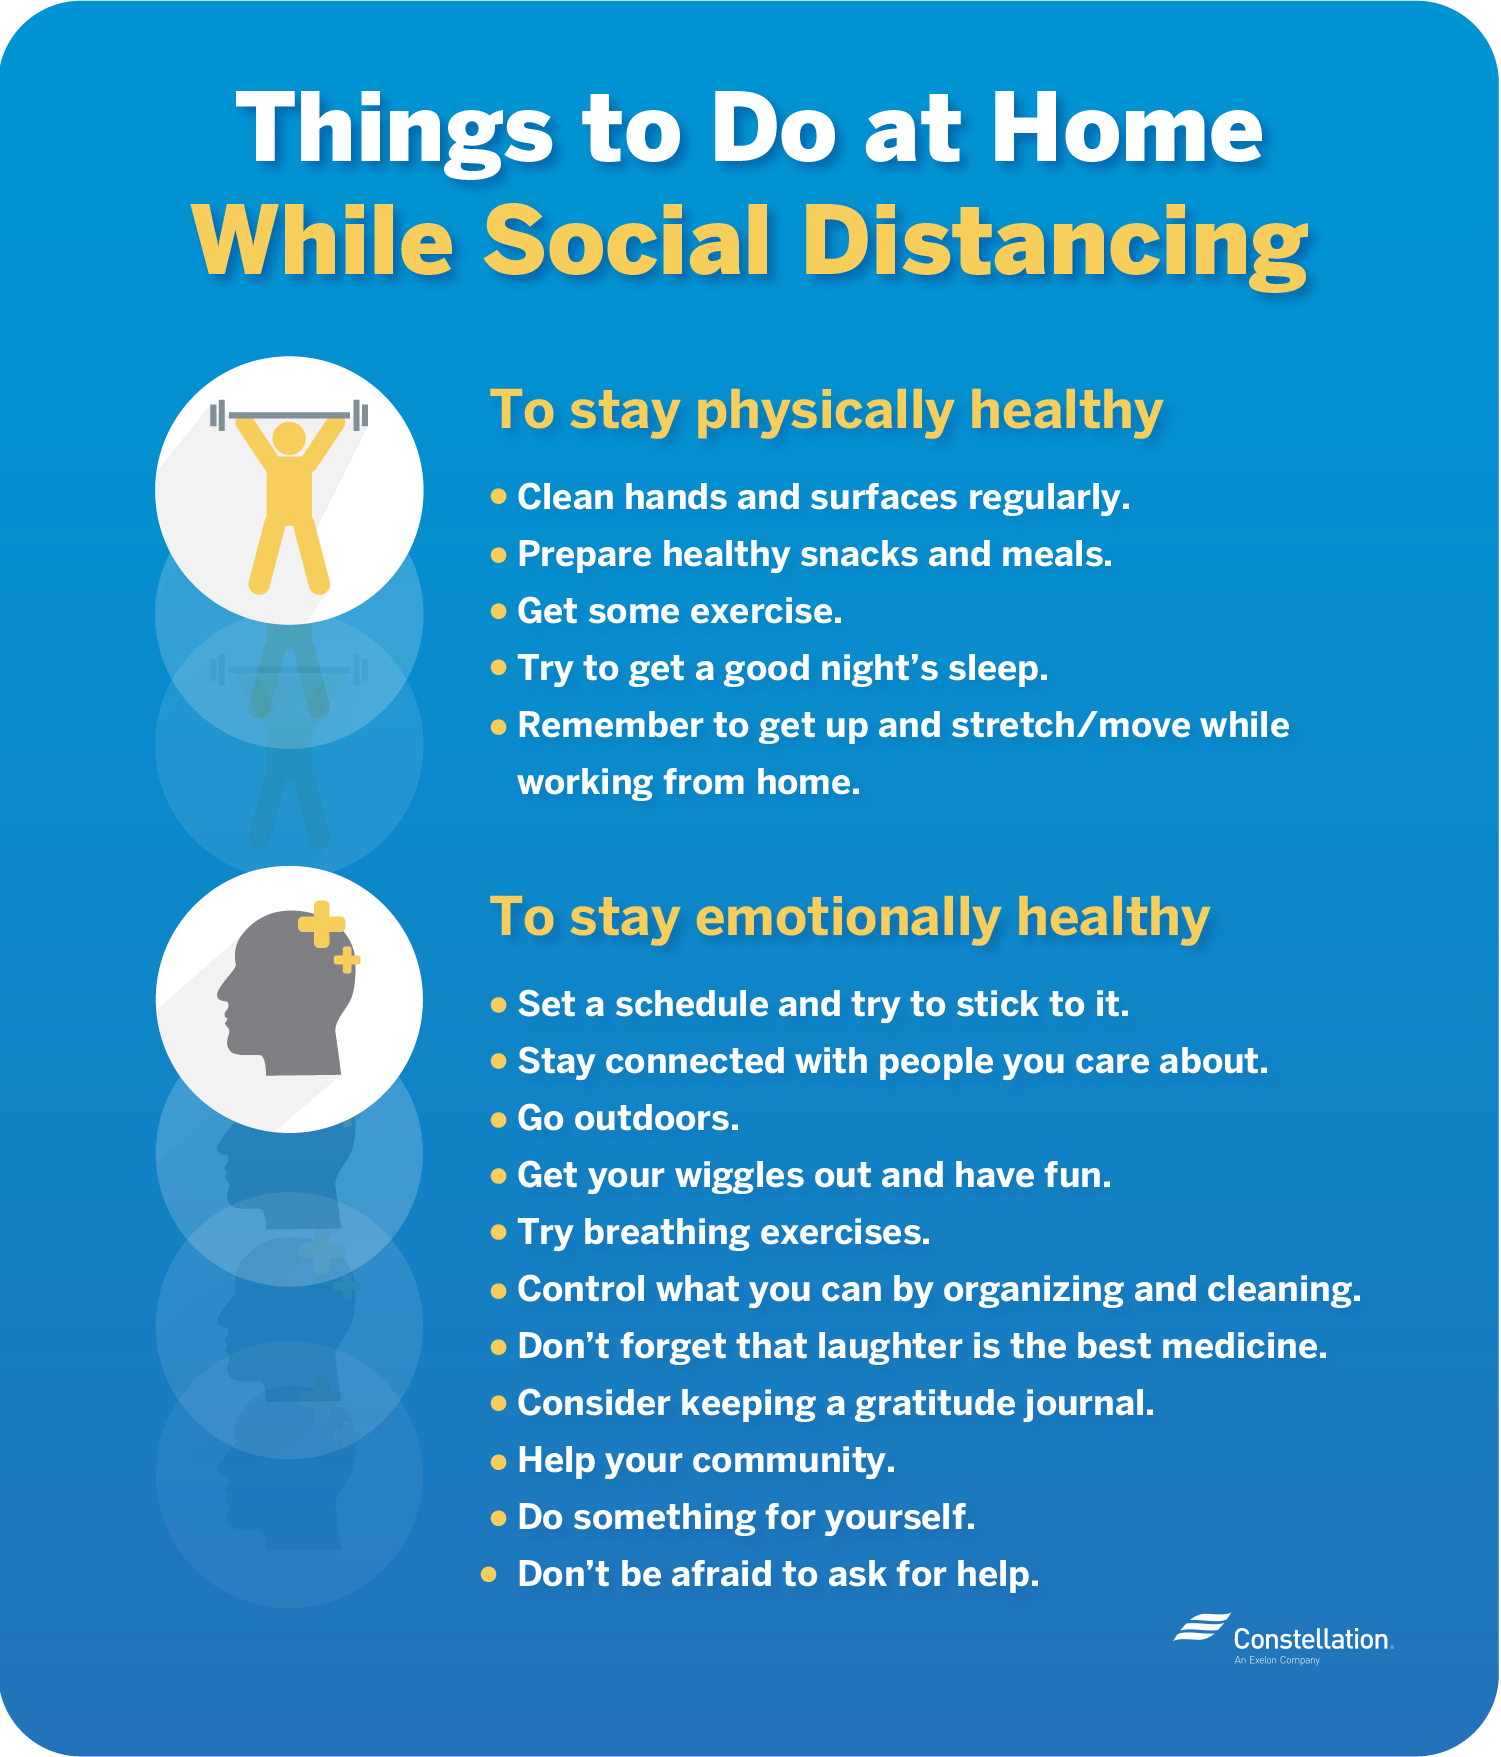 Things to do at home while social distancing